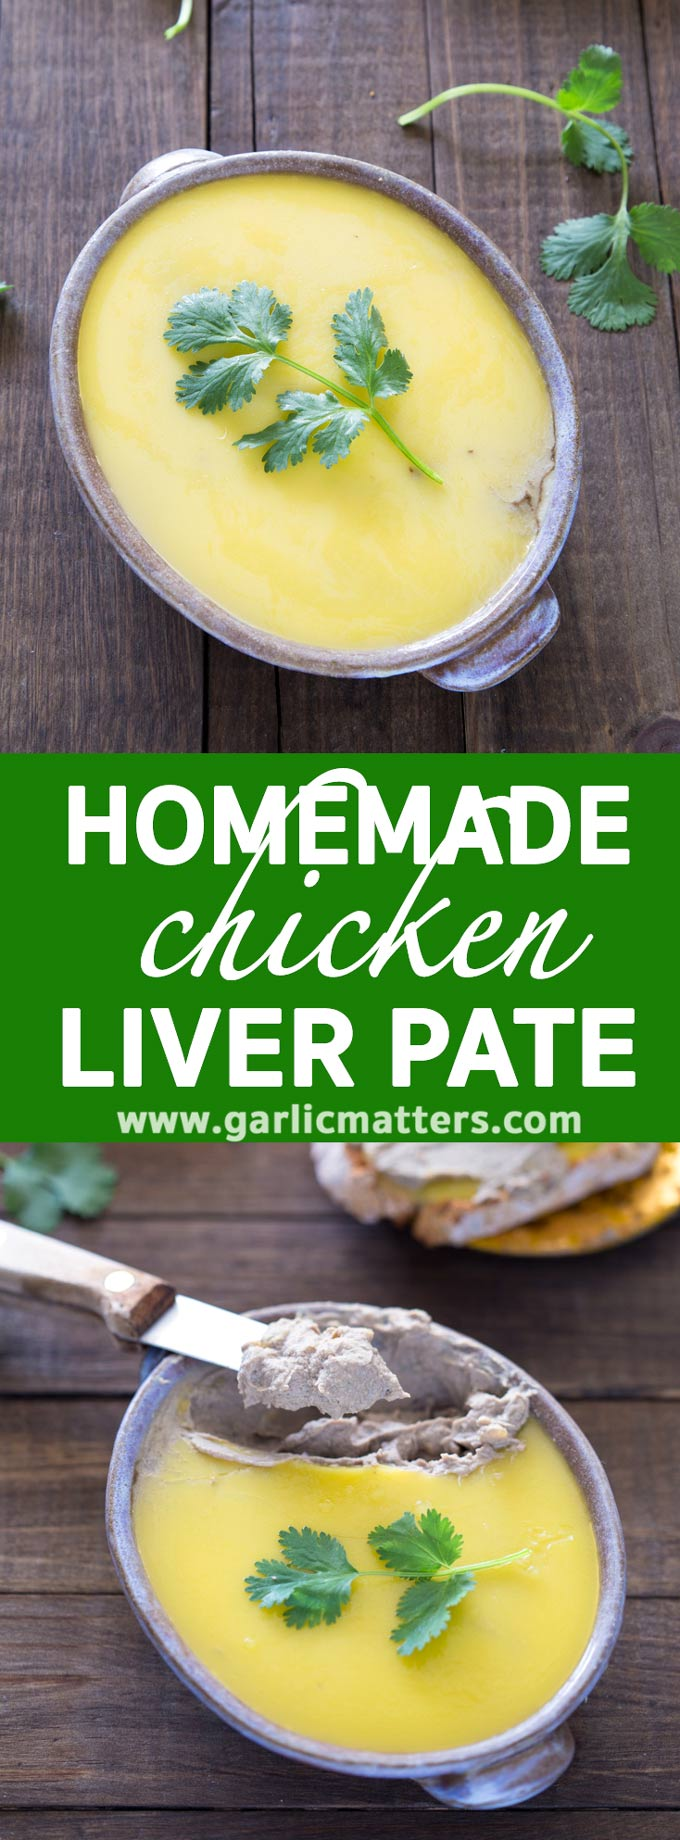 Homemade chicken liver pate recipe - decadent treat that can be made in 30 min with hardly any effort. Super tasty and really easy.